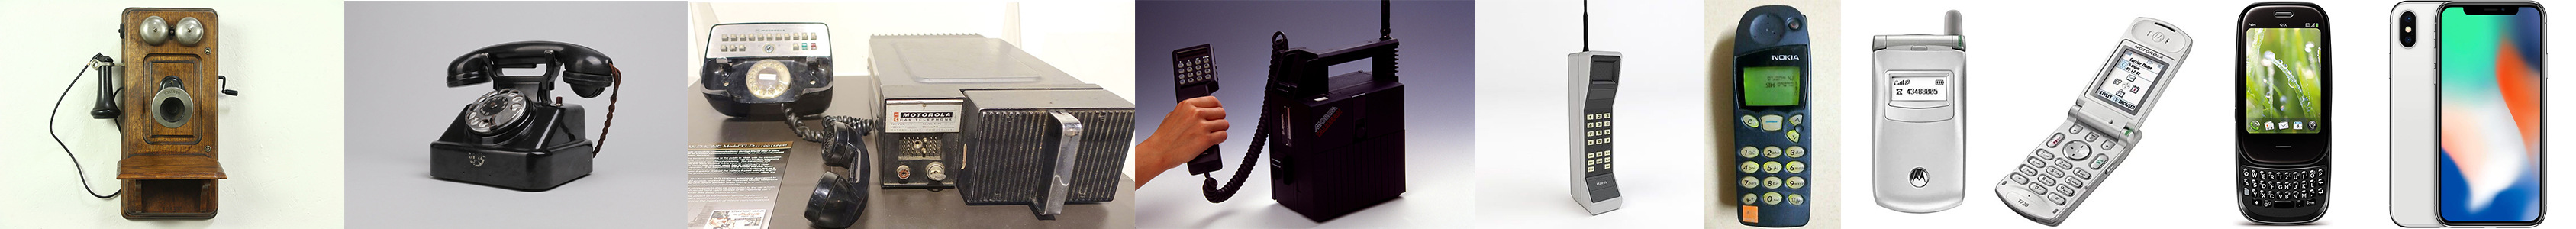 a compilation of images detailing how phones have changed over time